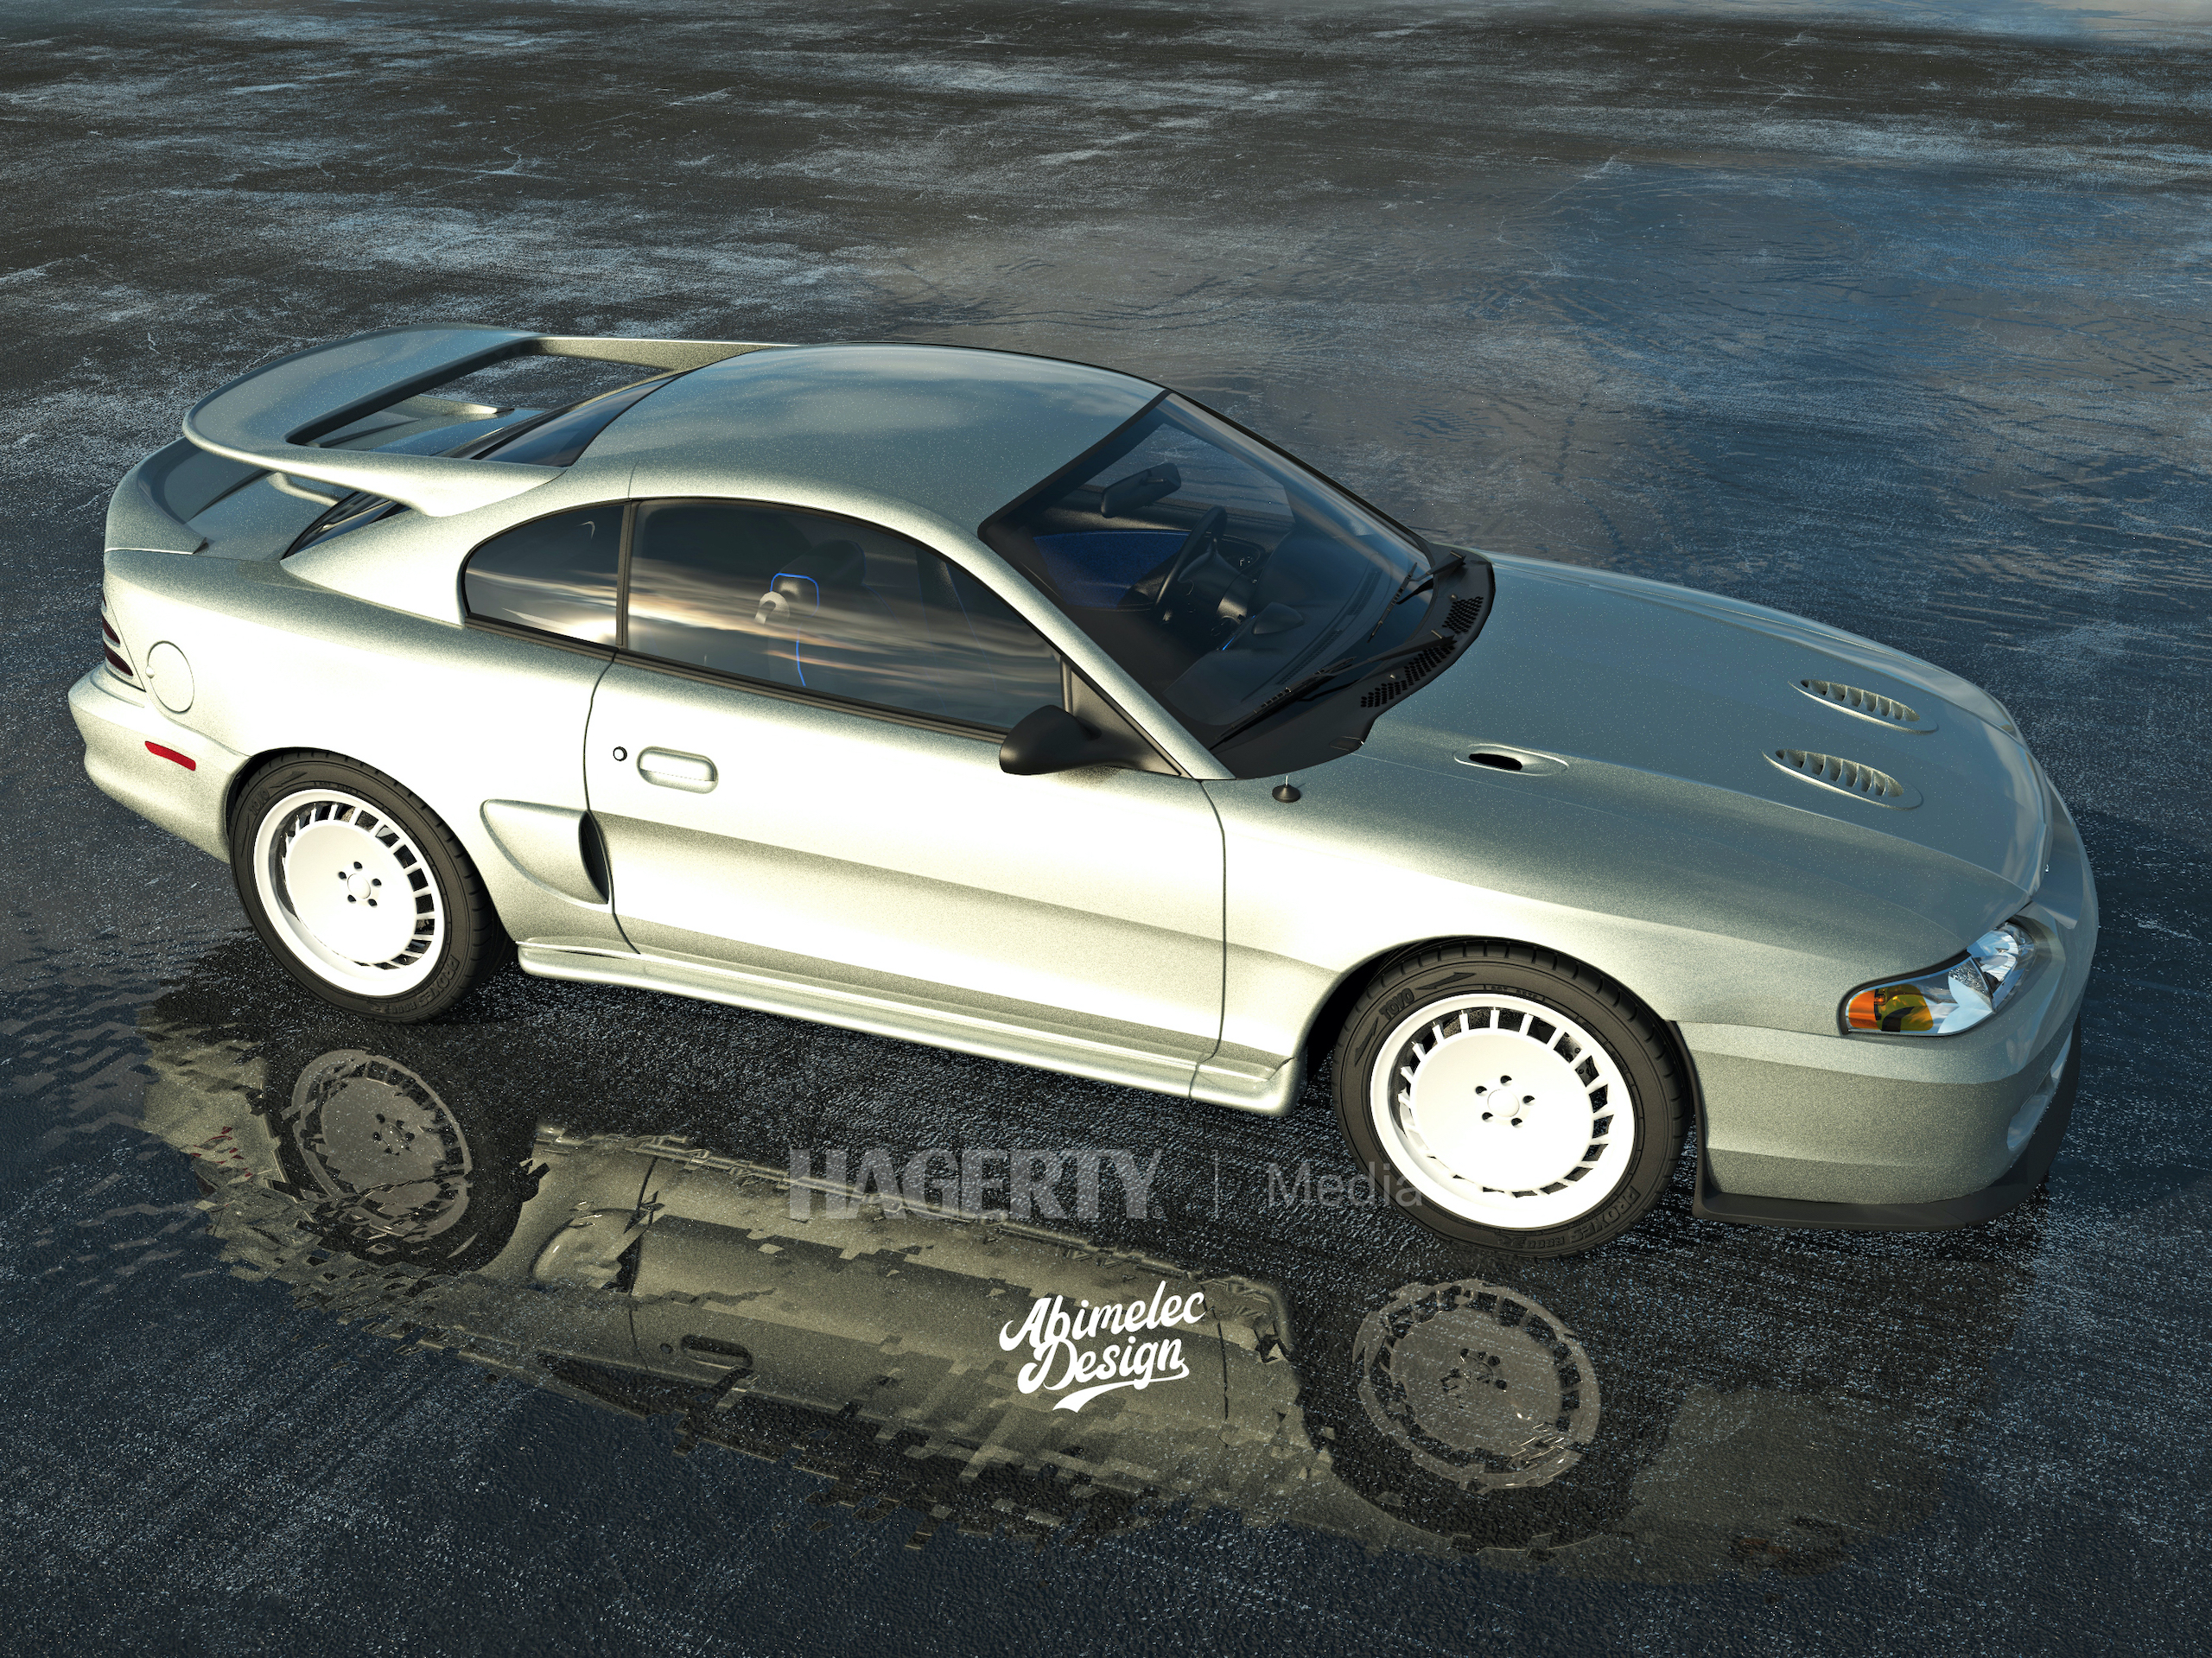 Mustang Cosworth silver